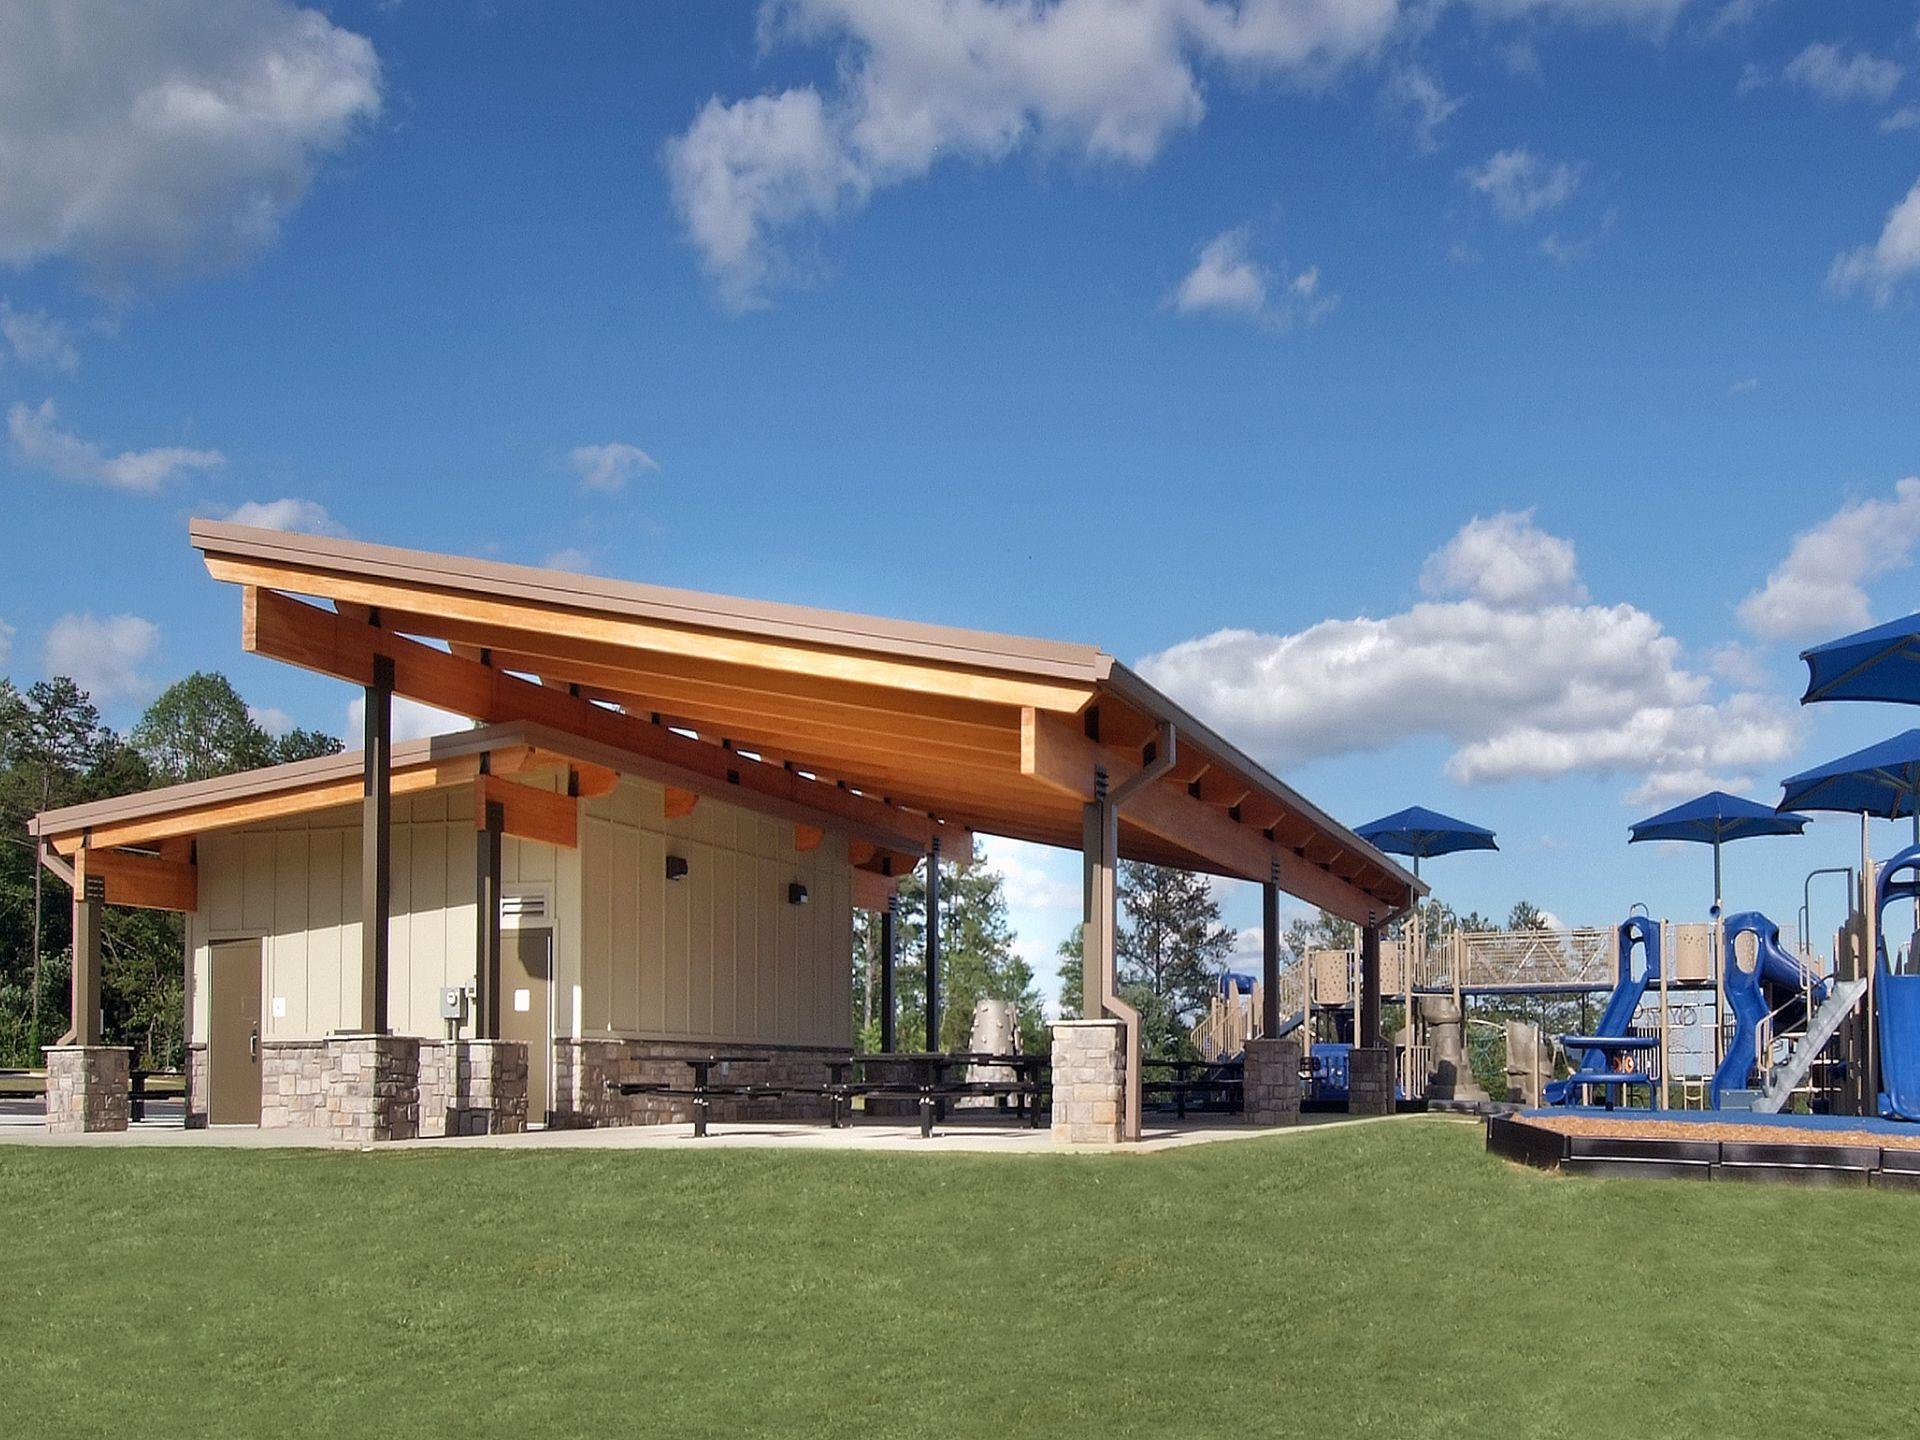 Outside amenities include craftman style restrooms with picnic pavilion area covered by slanted wood beam structure and playground area on grass